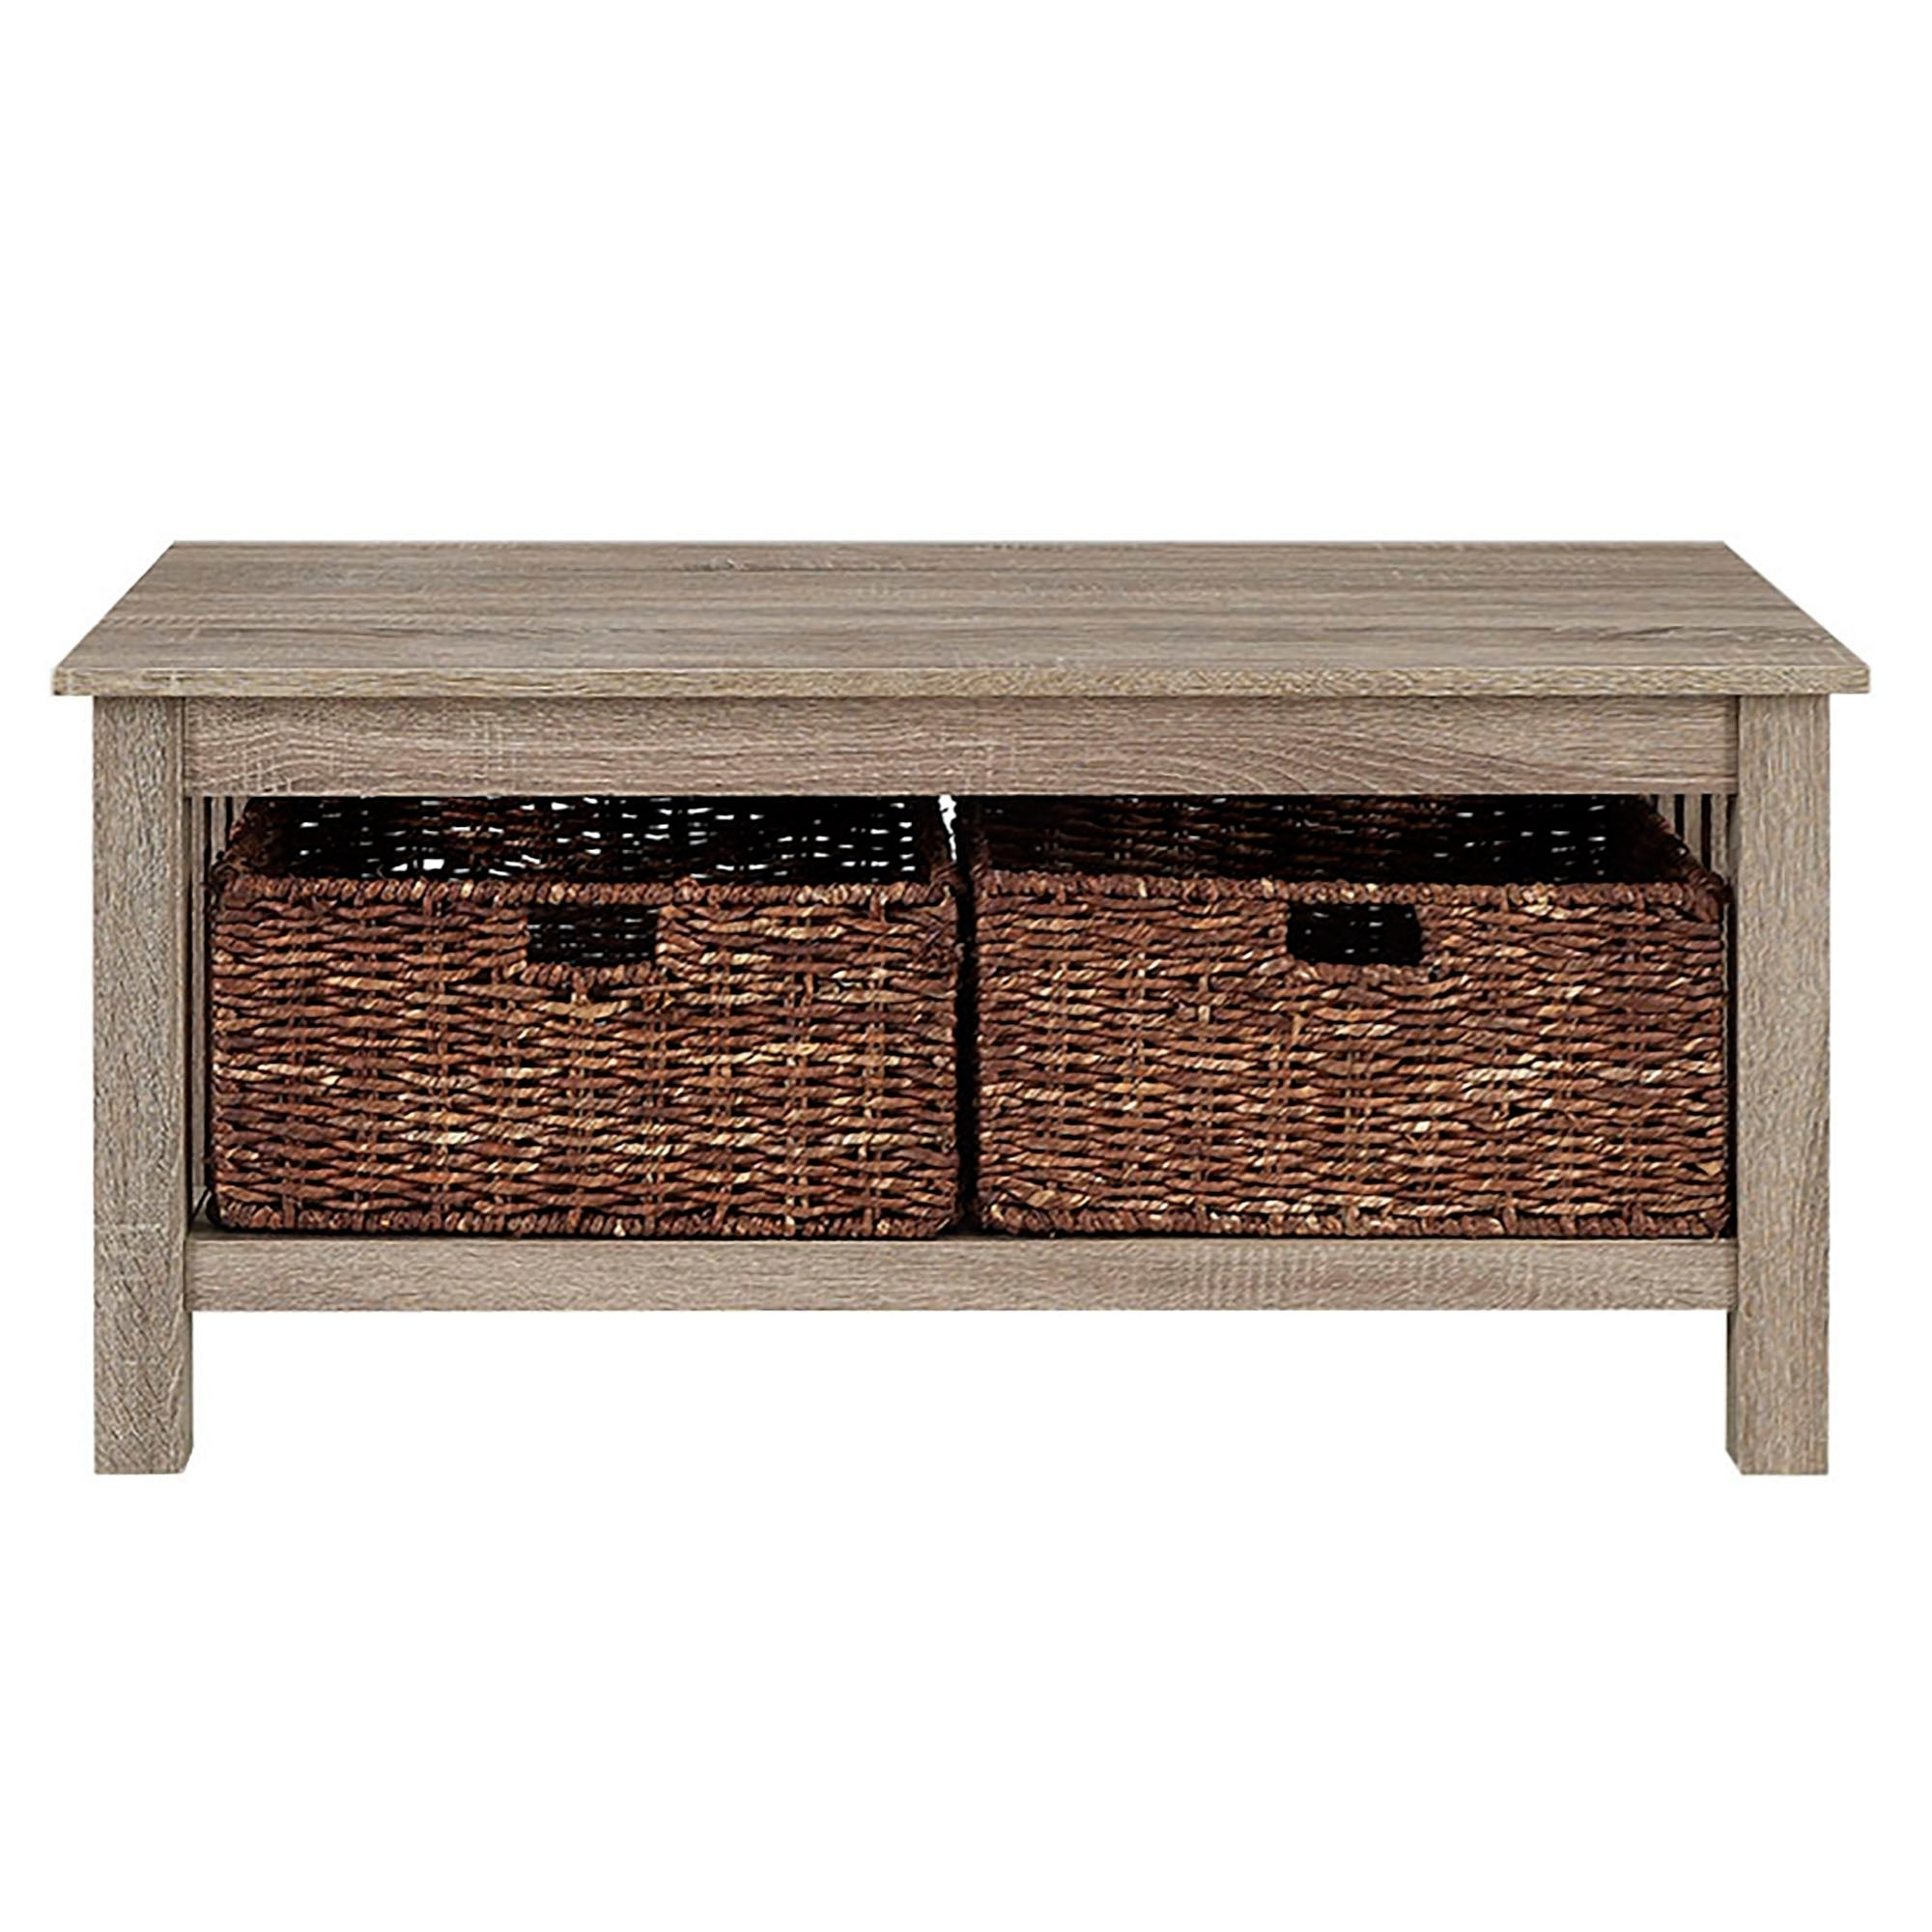 Middlebrook Designs 40 Inch Coffee Table With Wicker Storage Baskets, Driftwood, Rustic Living Room Table – 40 X 22 X 18h Intended For Famous Rustic Coffee Tables With Wicker Storage Baskets (View 2 of 20)